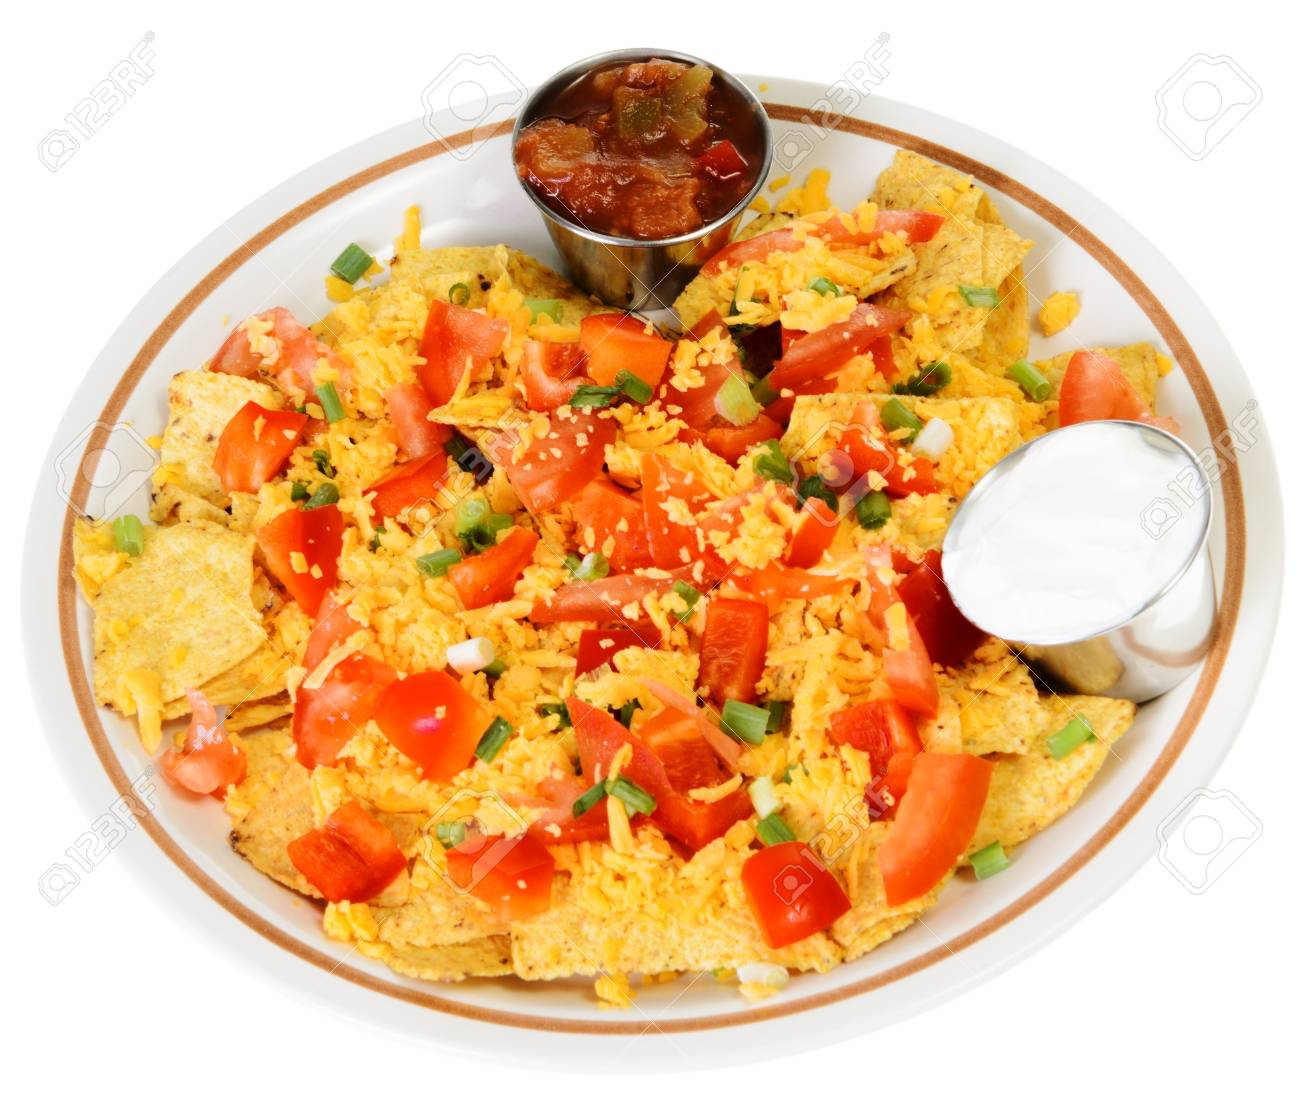 A plate of nachos and cheese, isolated on a white background Stock Photo - 16402790